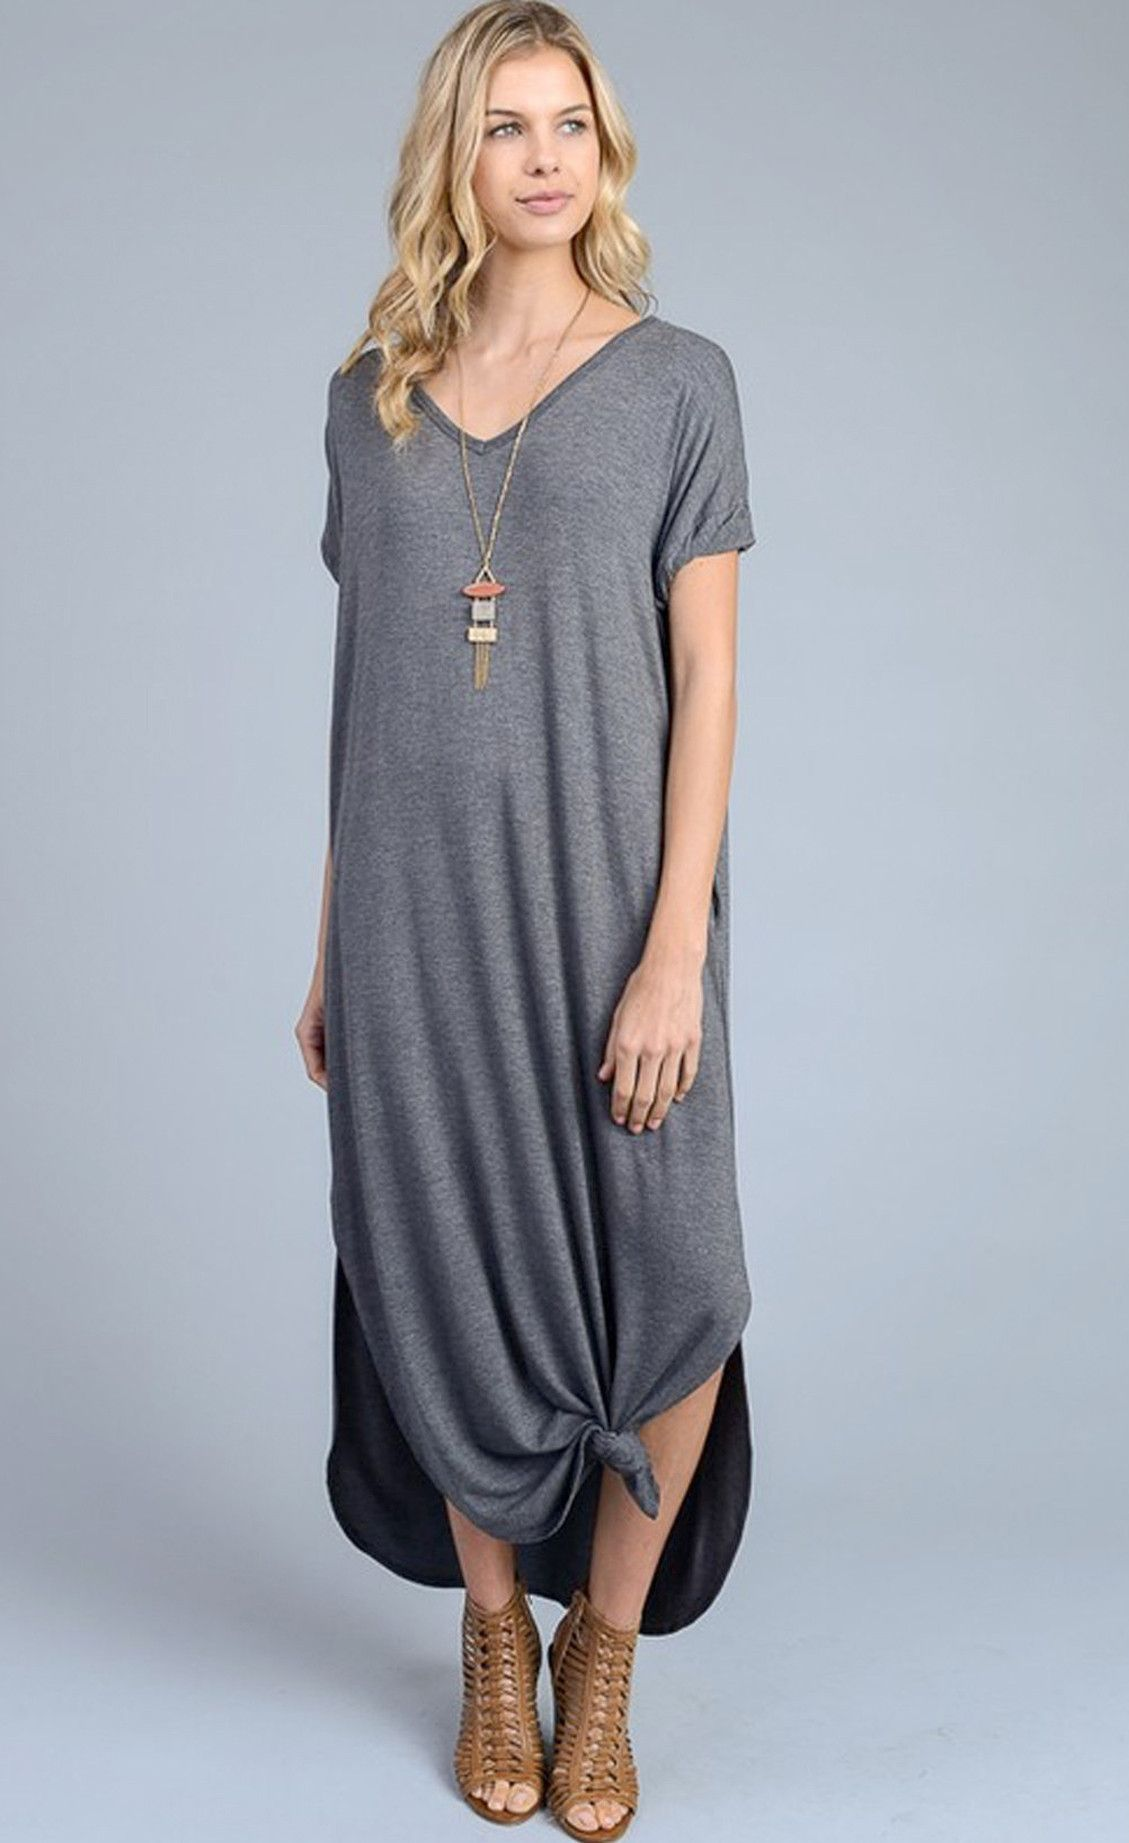 528460a6d709 Abigail Charcoal T-Shirt Maxi Dress - Find the perfect dress for any  occasion at ShopLuckyDuck.com